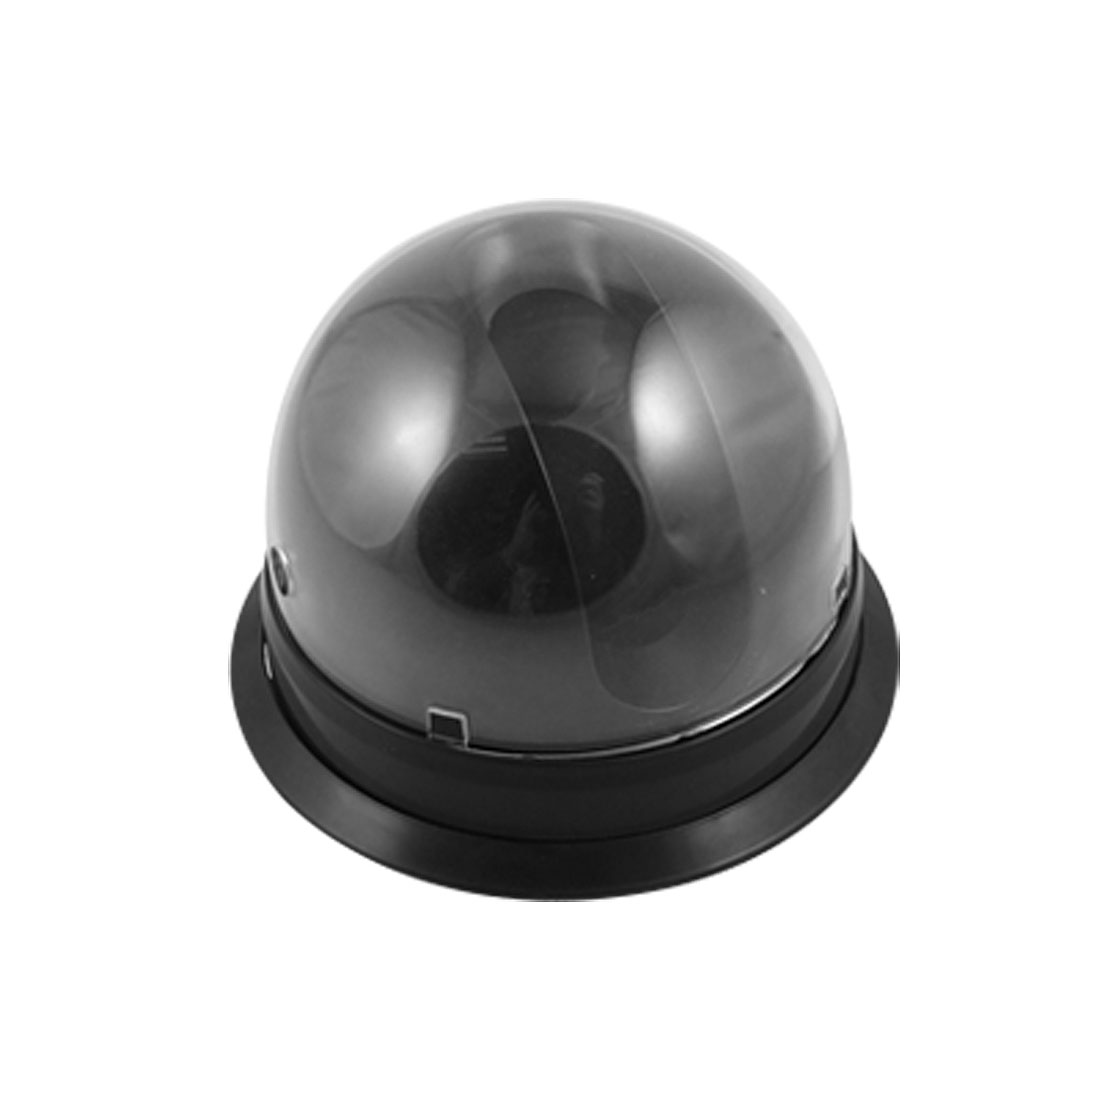 Black Plastic Housing Dome Shell Case for CCTV Security Camera